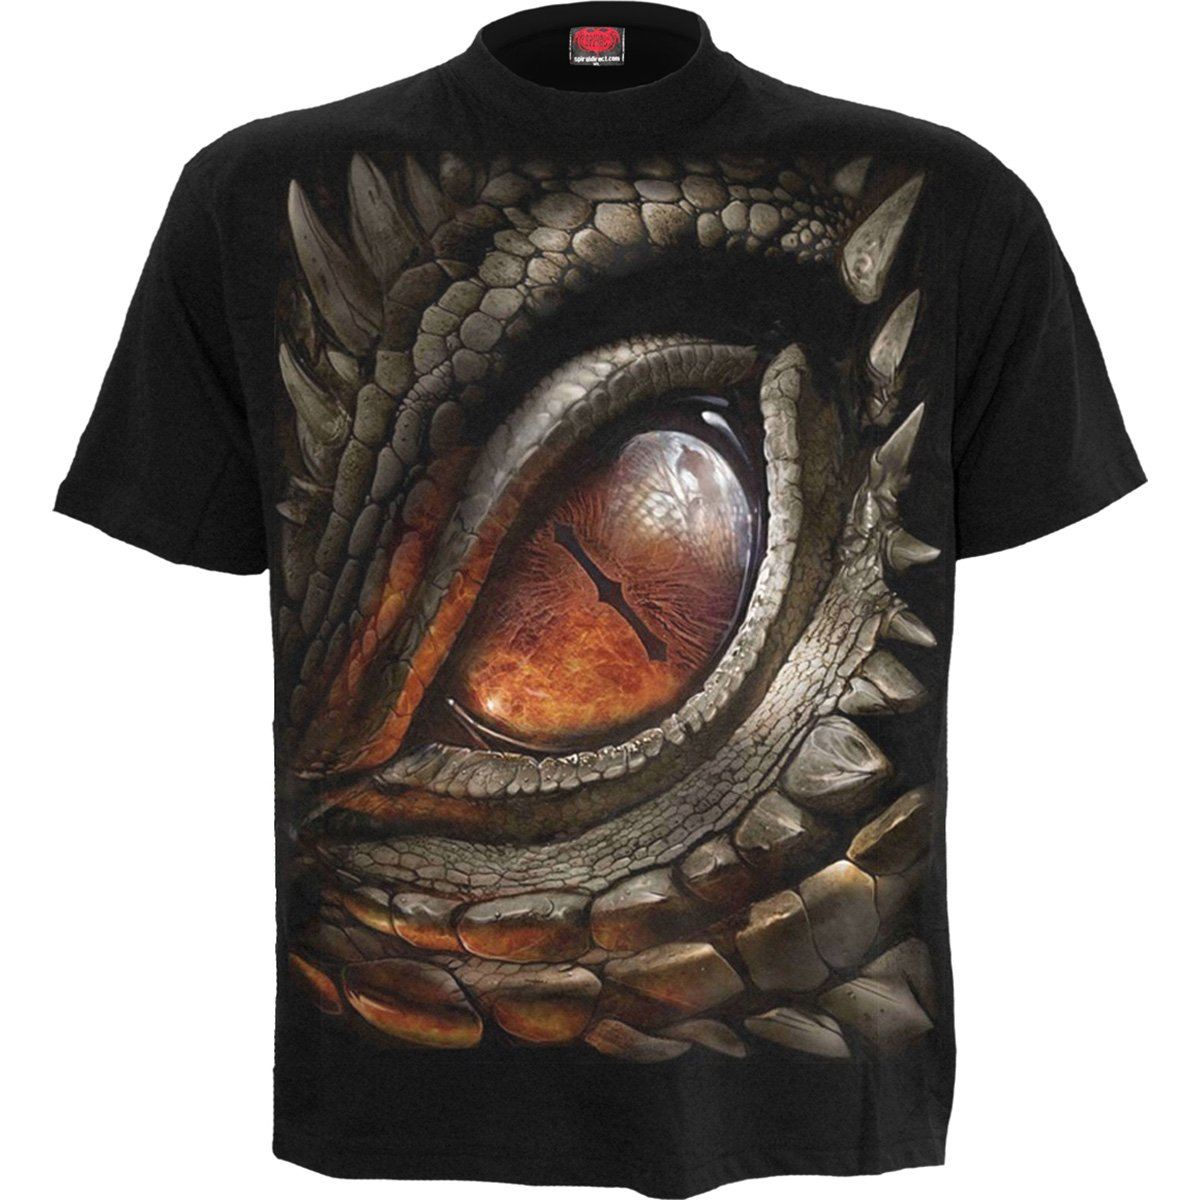 DRAGON EYE Sleeping Beast Black T-Shirt